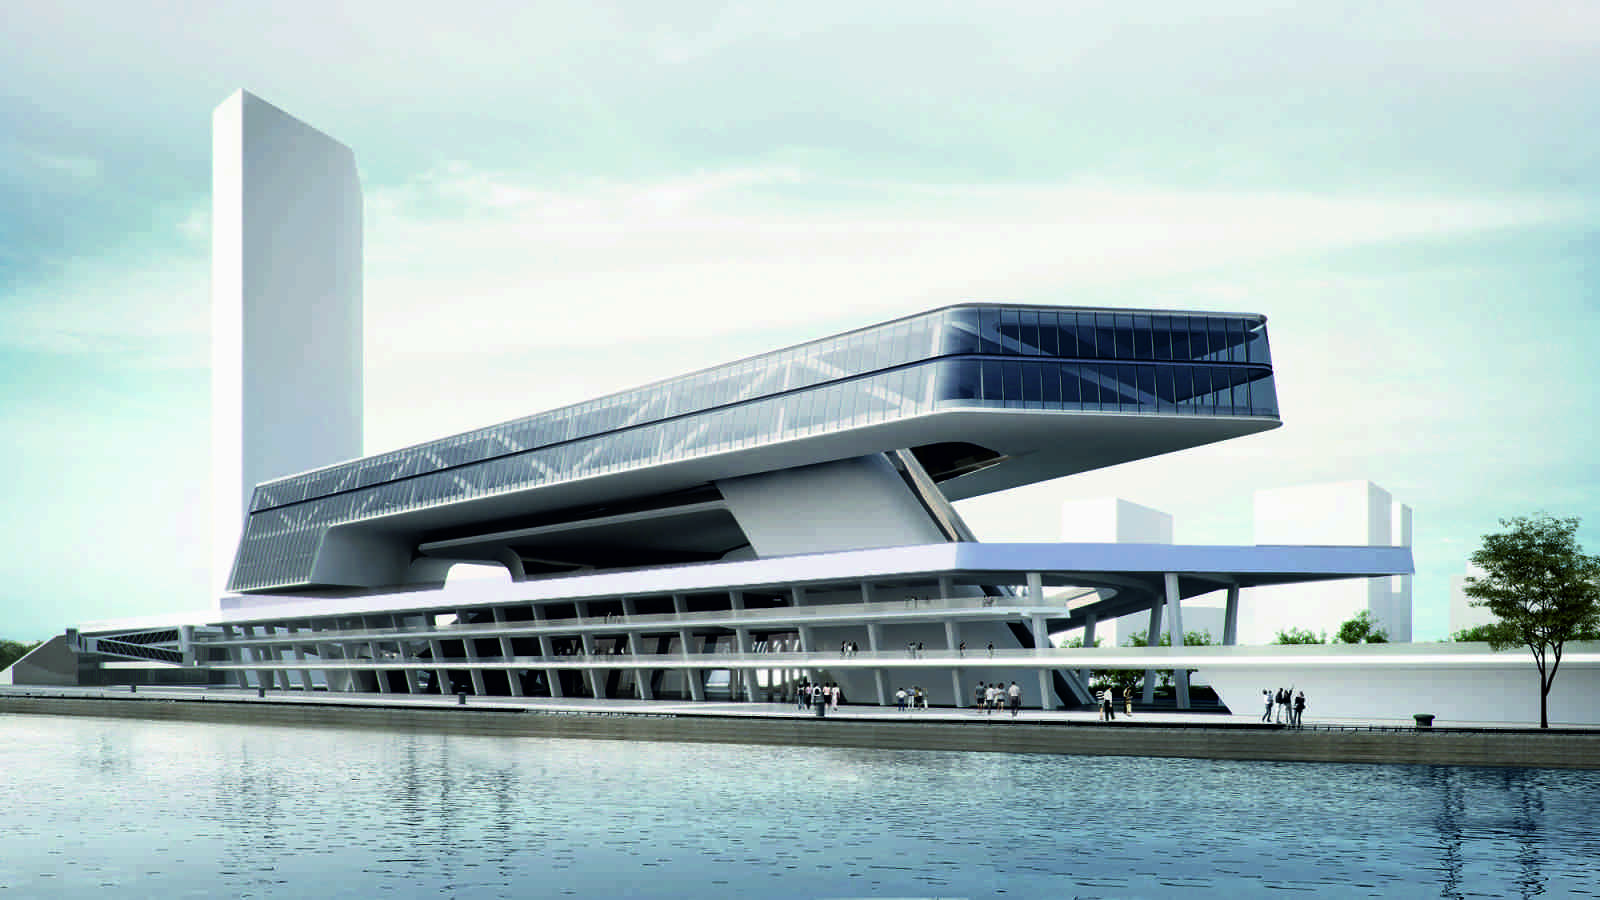 Kaohsiung-Port-And-Cruise-Service-Center-By-Jet-Architecture02